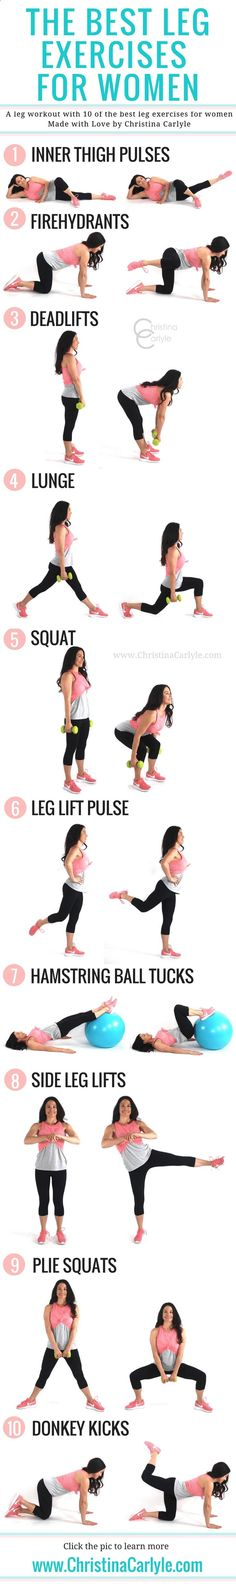 These are the best leg exercises for women that will help you tighten and tone your legs without bulking up. Do all of these exercises for a complete leg workout and you should really feel the burn. #legworkout #legexercises